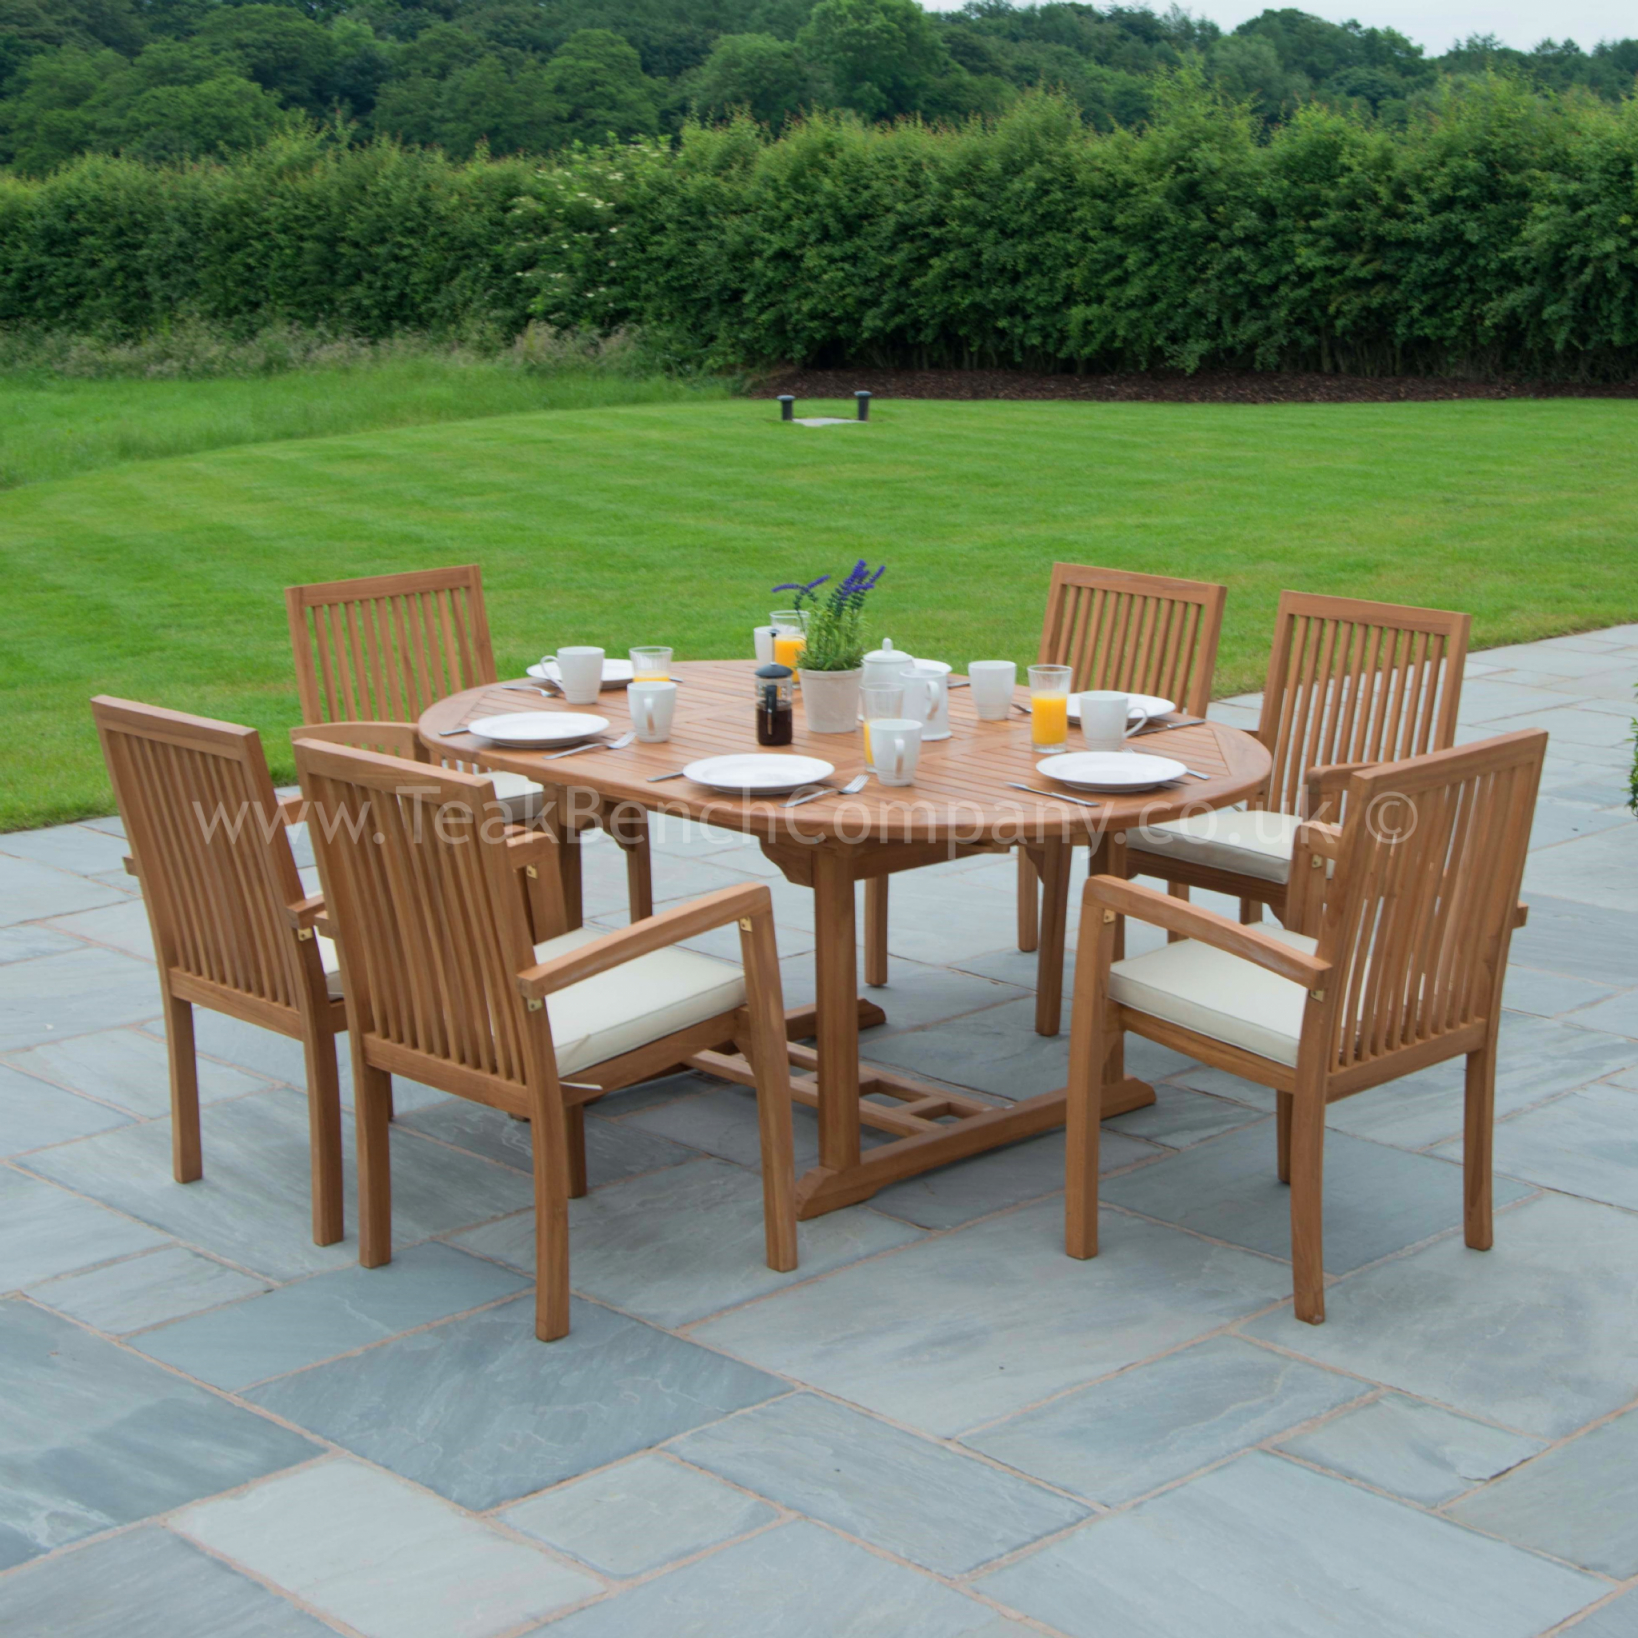 Classic Extendable Dining Set Six Seat Teak Garden Furniture throughout Teak Outdoor Furniture Set